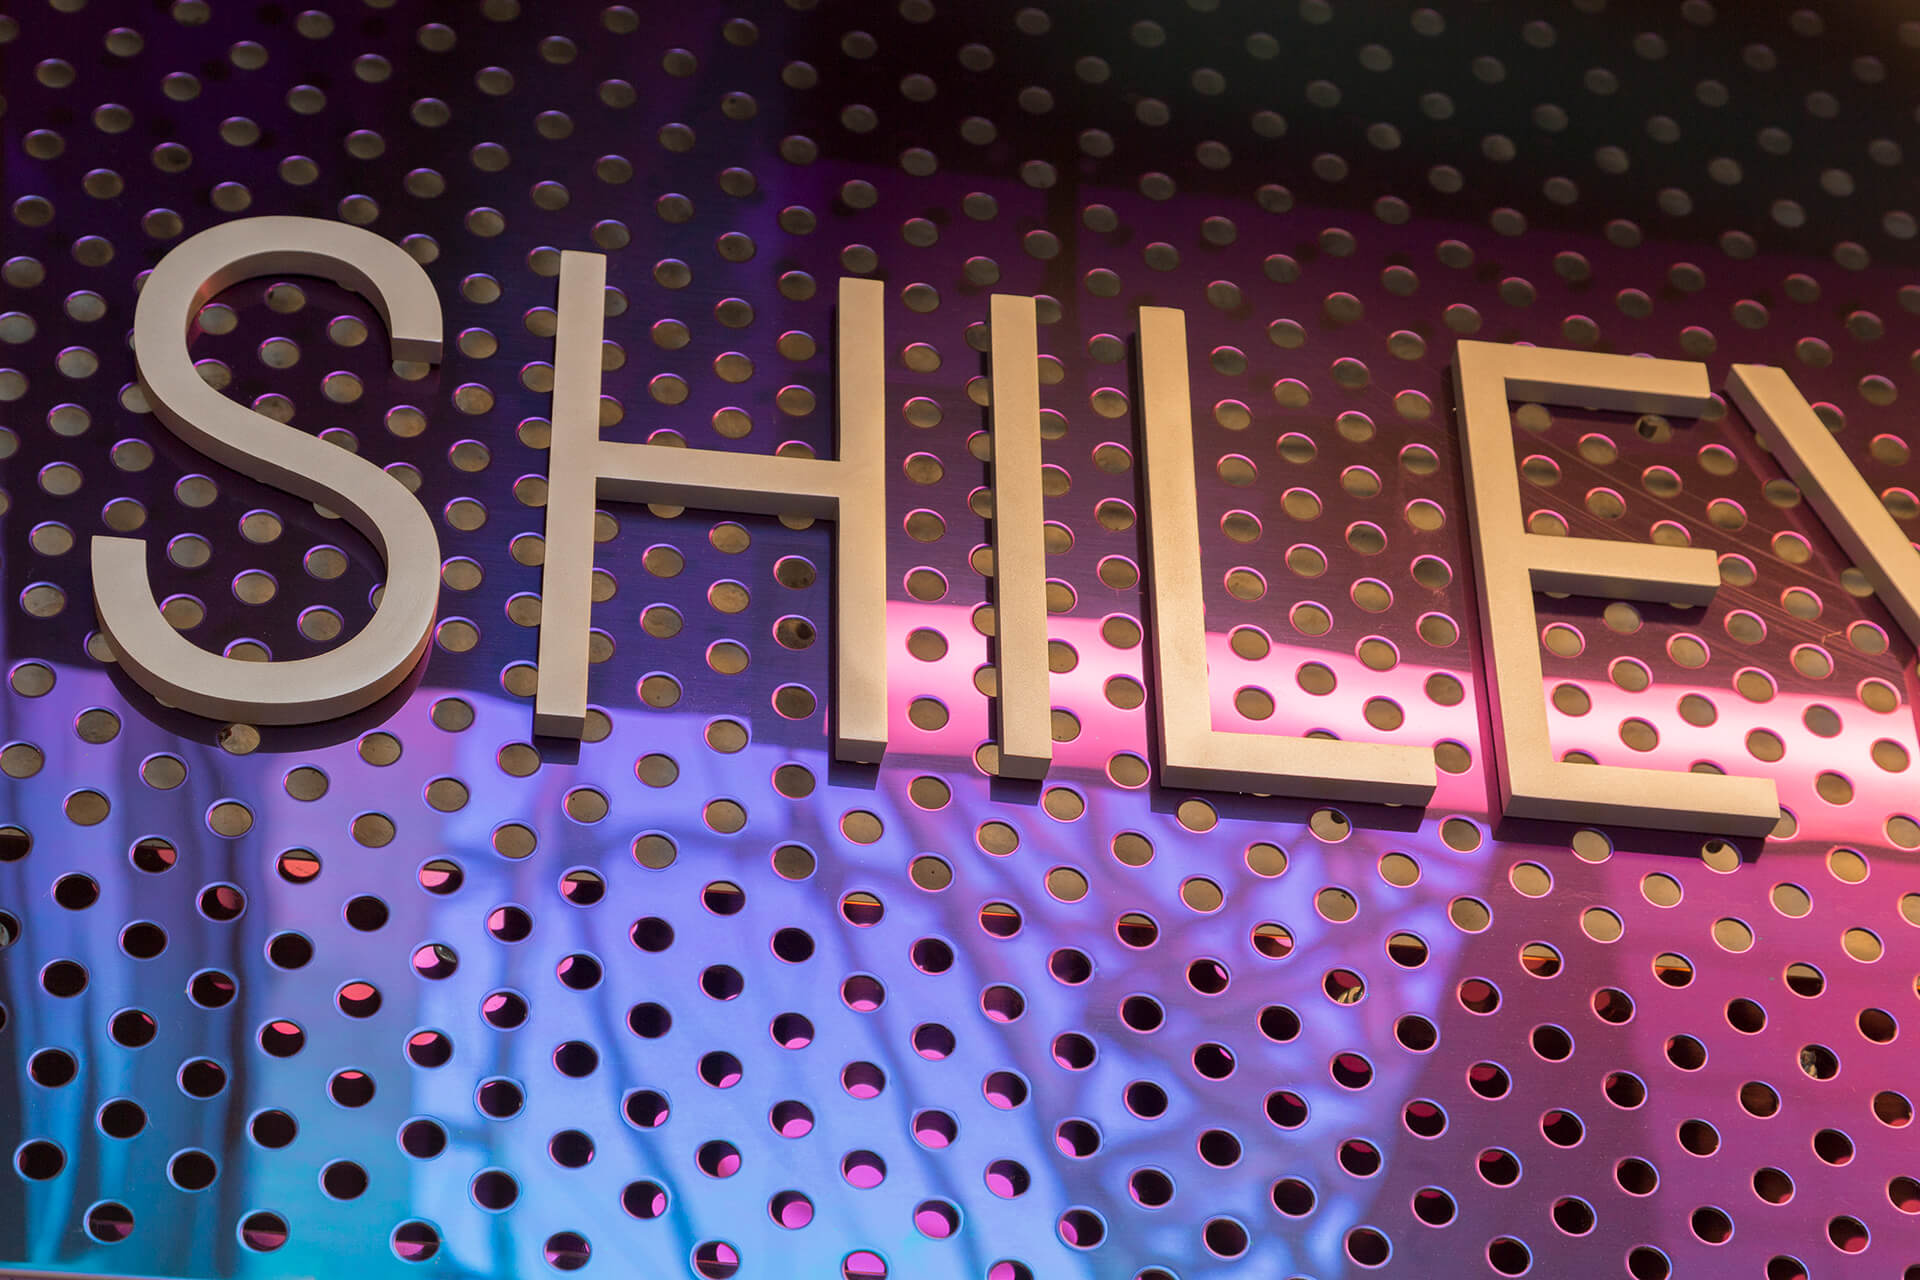 Shiley Special Events Suite, signage and decorative perforated cladding in interference stainless steel.